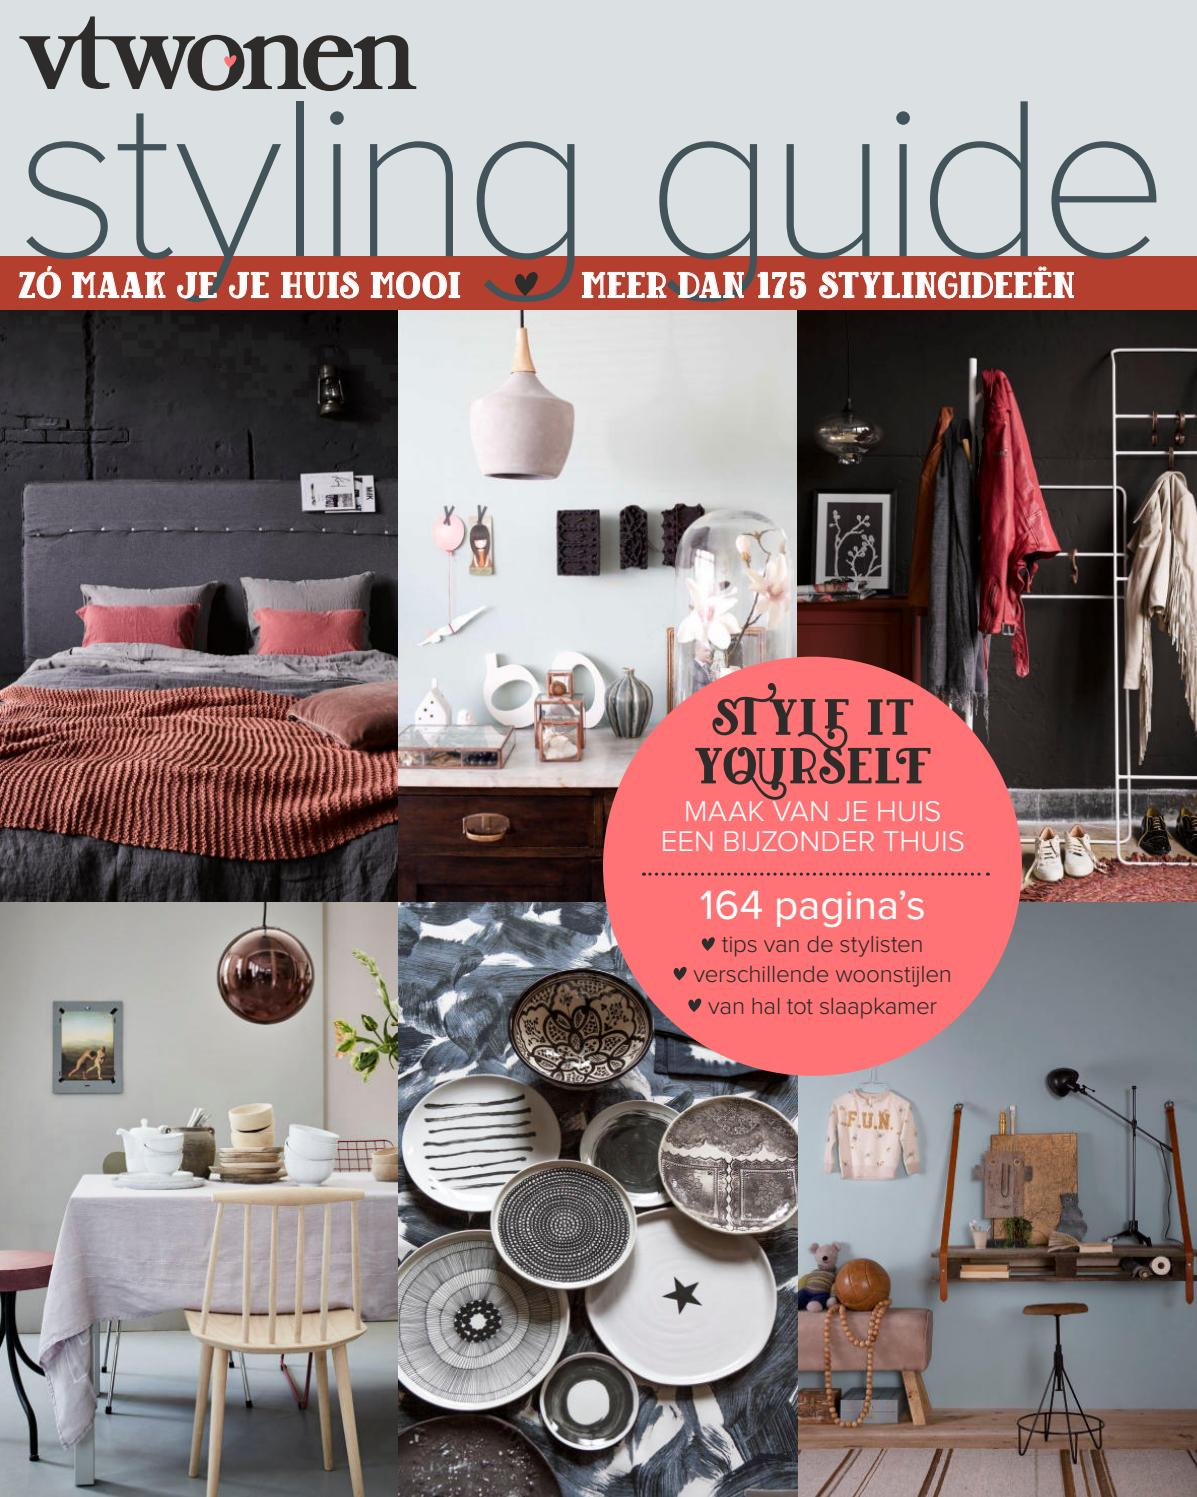 Woonstijlen 2017 Vtwonen Styling Guide 2017 By Home Deco Sanoma Issuu